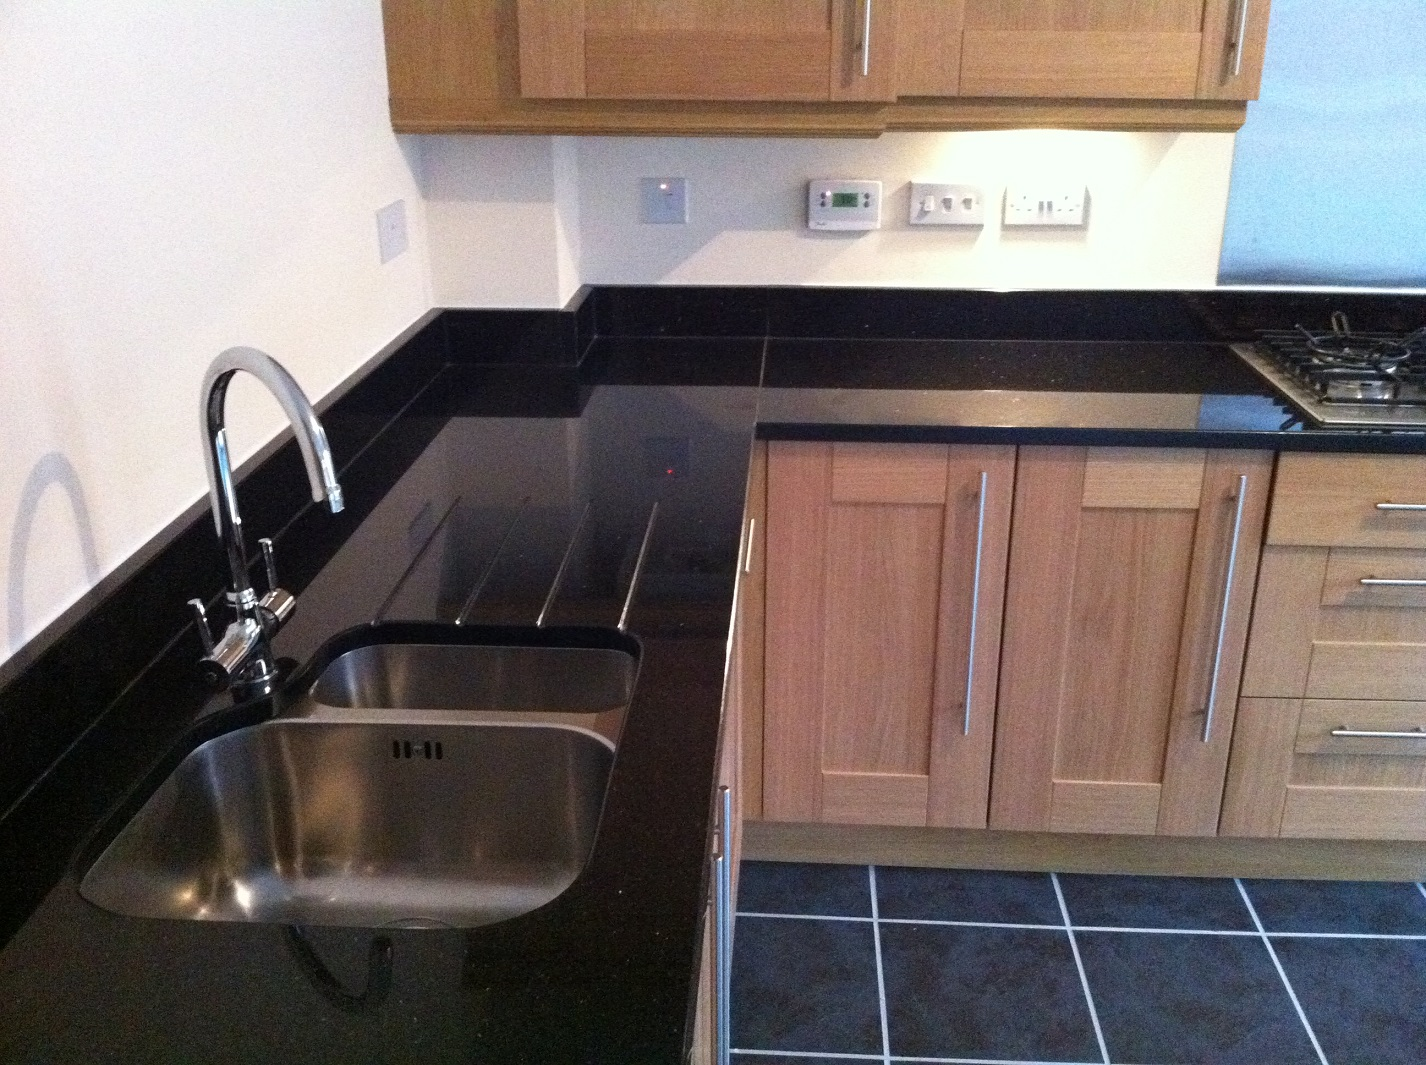 We supply Marble Worktops, Granite Worktops and Quartz Worktops in the London Area. We supply Marble Worktops, Granite Worktops and Quartz Worktops in the Manchester Area. We supply Marble Worktops, Granite Worktops and Quartz Worktops in the Birmingam Area. We supply Marble Worktops, Granite Worktops and Quartz Worktops in the Leeds Area. We supply Marble Worktops, Granite Worktops and Quartz Worktops in the Doncaster Area. We supply Marble Worktops, Granite Worktops and Quartz Worktops in the Newcastle. We supply Marble Worktops, Granite Worktops and Quartz Worktops in the Leicester Area. We supply Marble Worktops, Granite Worktops and Quartz Worktops in the Milton Keynes Area. We supply Marble Worktops, Granite Worktops and Quartz Worktops in the Liverpool Area. We supply Marble Worktops, Granite Worktops and Quartz Worktops in the Nottingham Area. We supply Marble Worktops, Granite Worktops and Quartz Worktops in the Greater London Area. We supply Marble Worktops, Granite Worktops and Quartz Worktops in the Cambridge Area. Granite Worktops and Quartz Worktops in the Sheffield Area. Quartz worktops london, granite worktops london